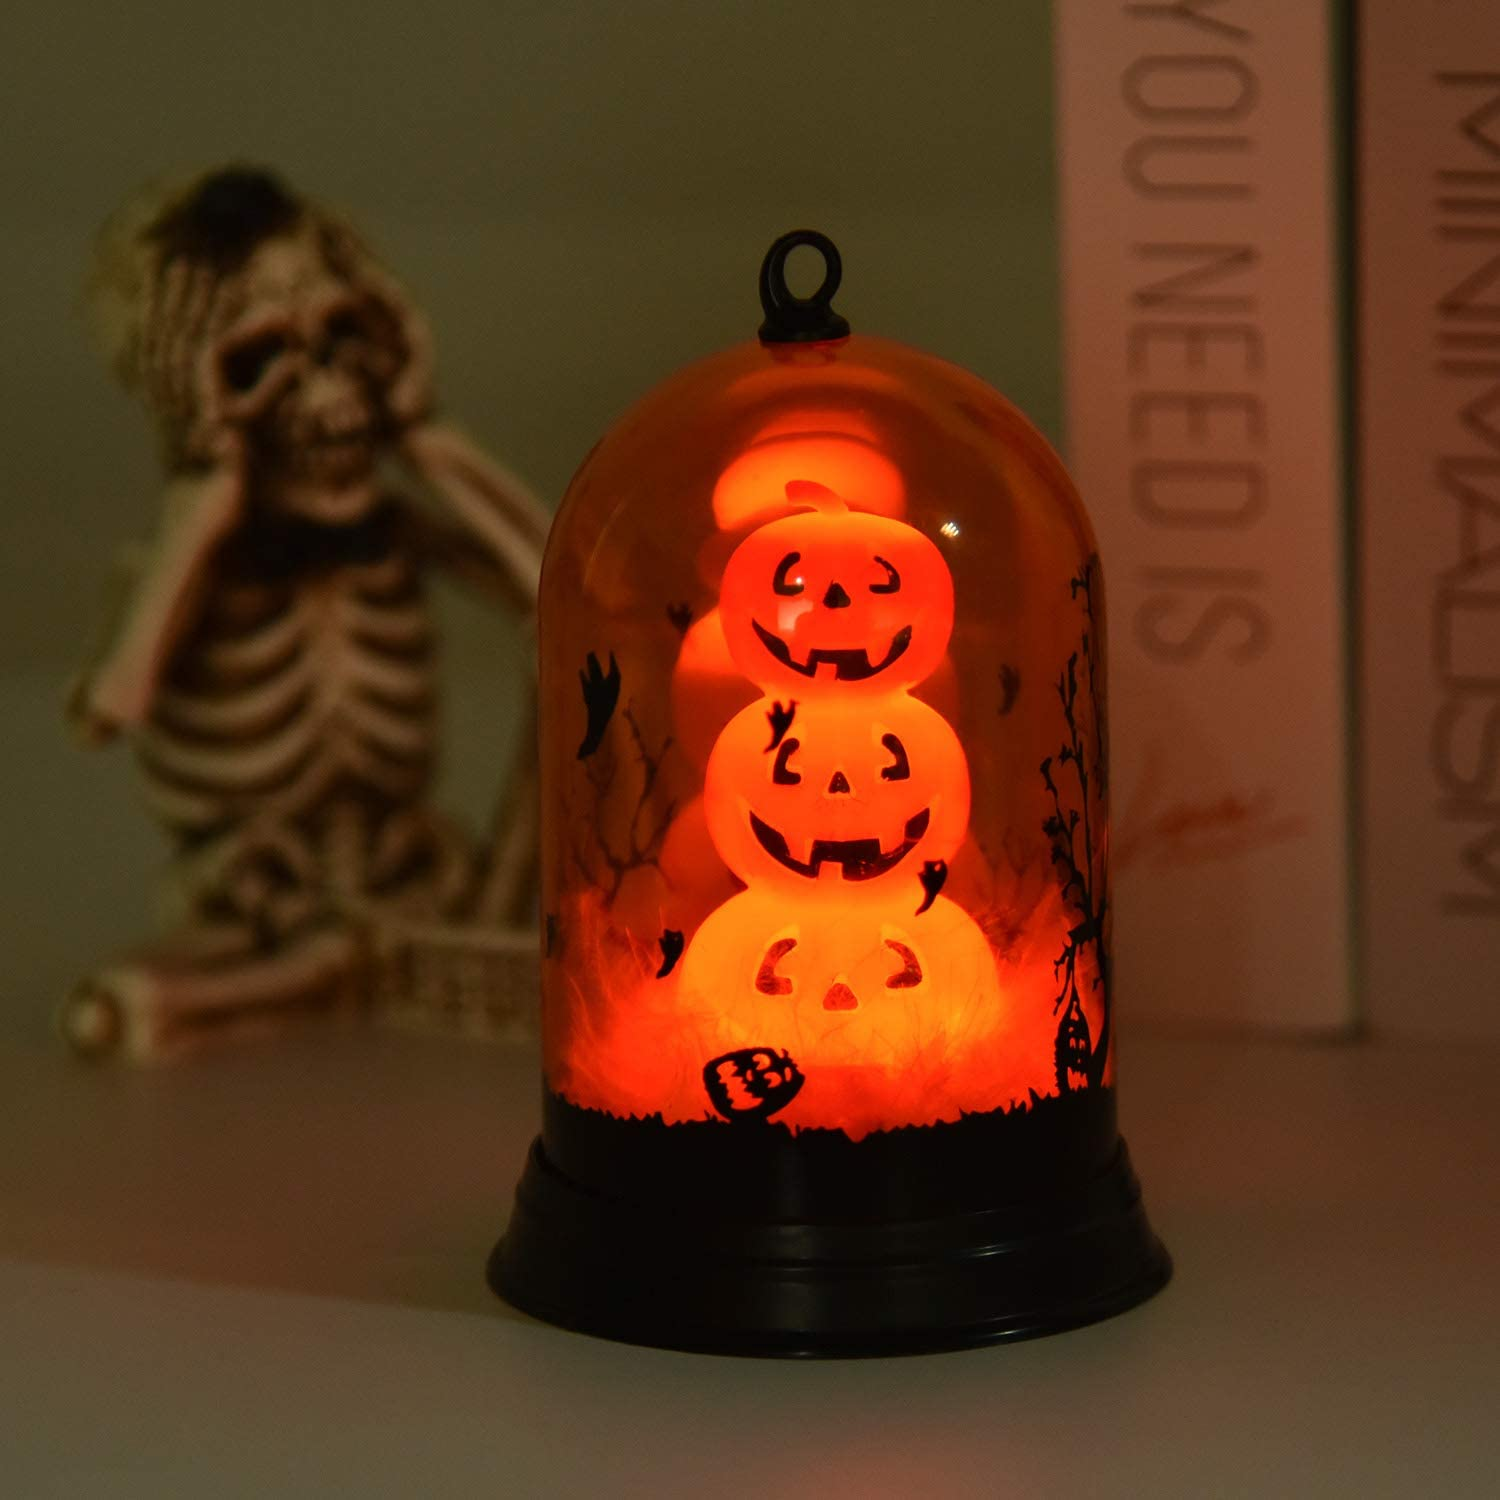 Goodlights Halloween Decorations Lights, Retro Pumpkin Lampshade Battery Operated, Orange Halloween Lights for Halloween Home Decor, Party Atmosphere